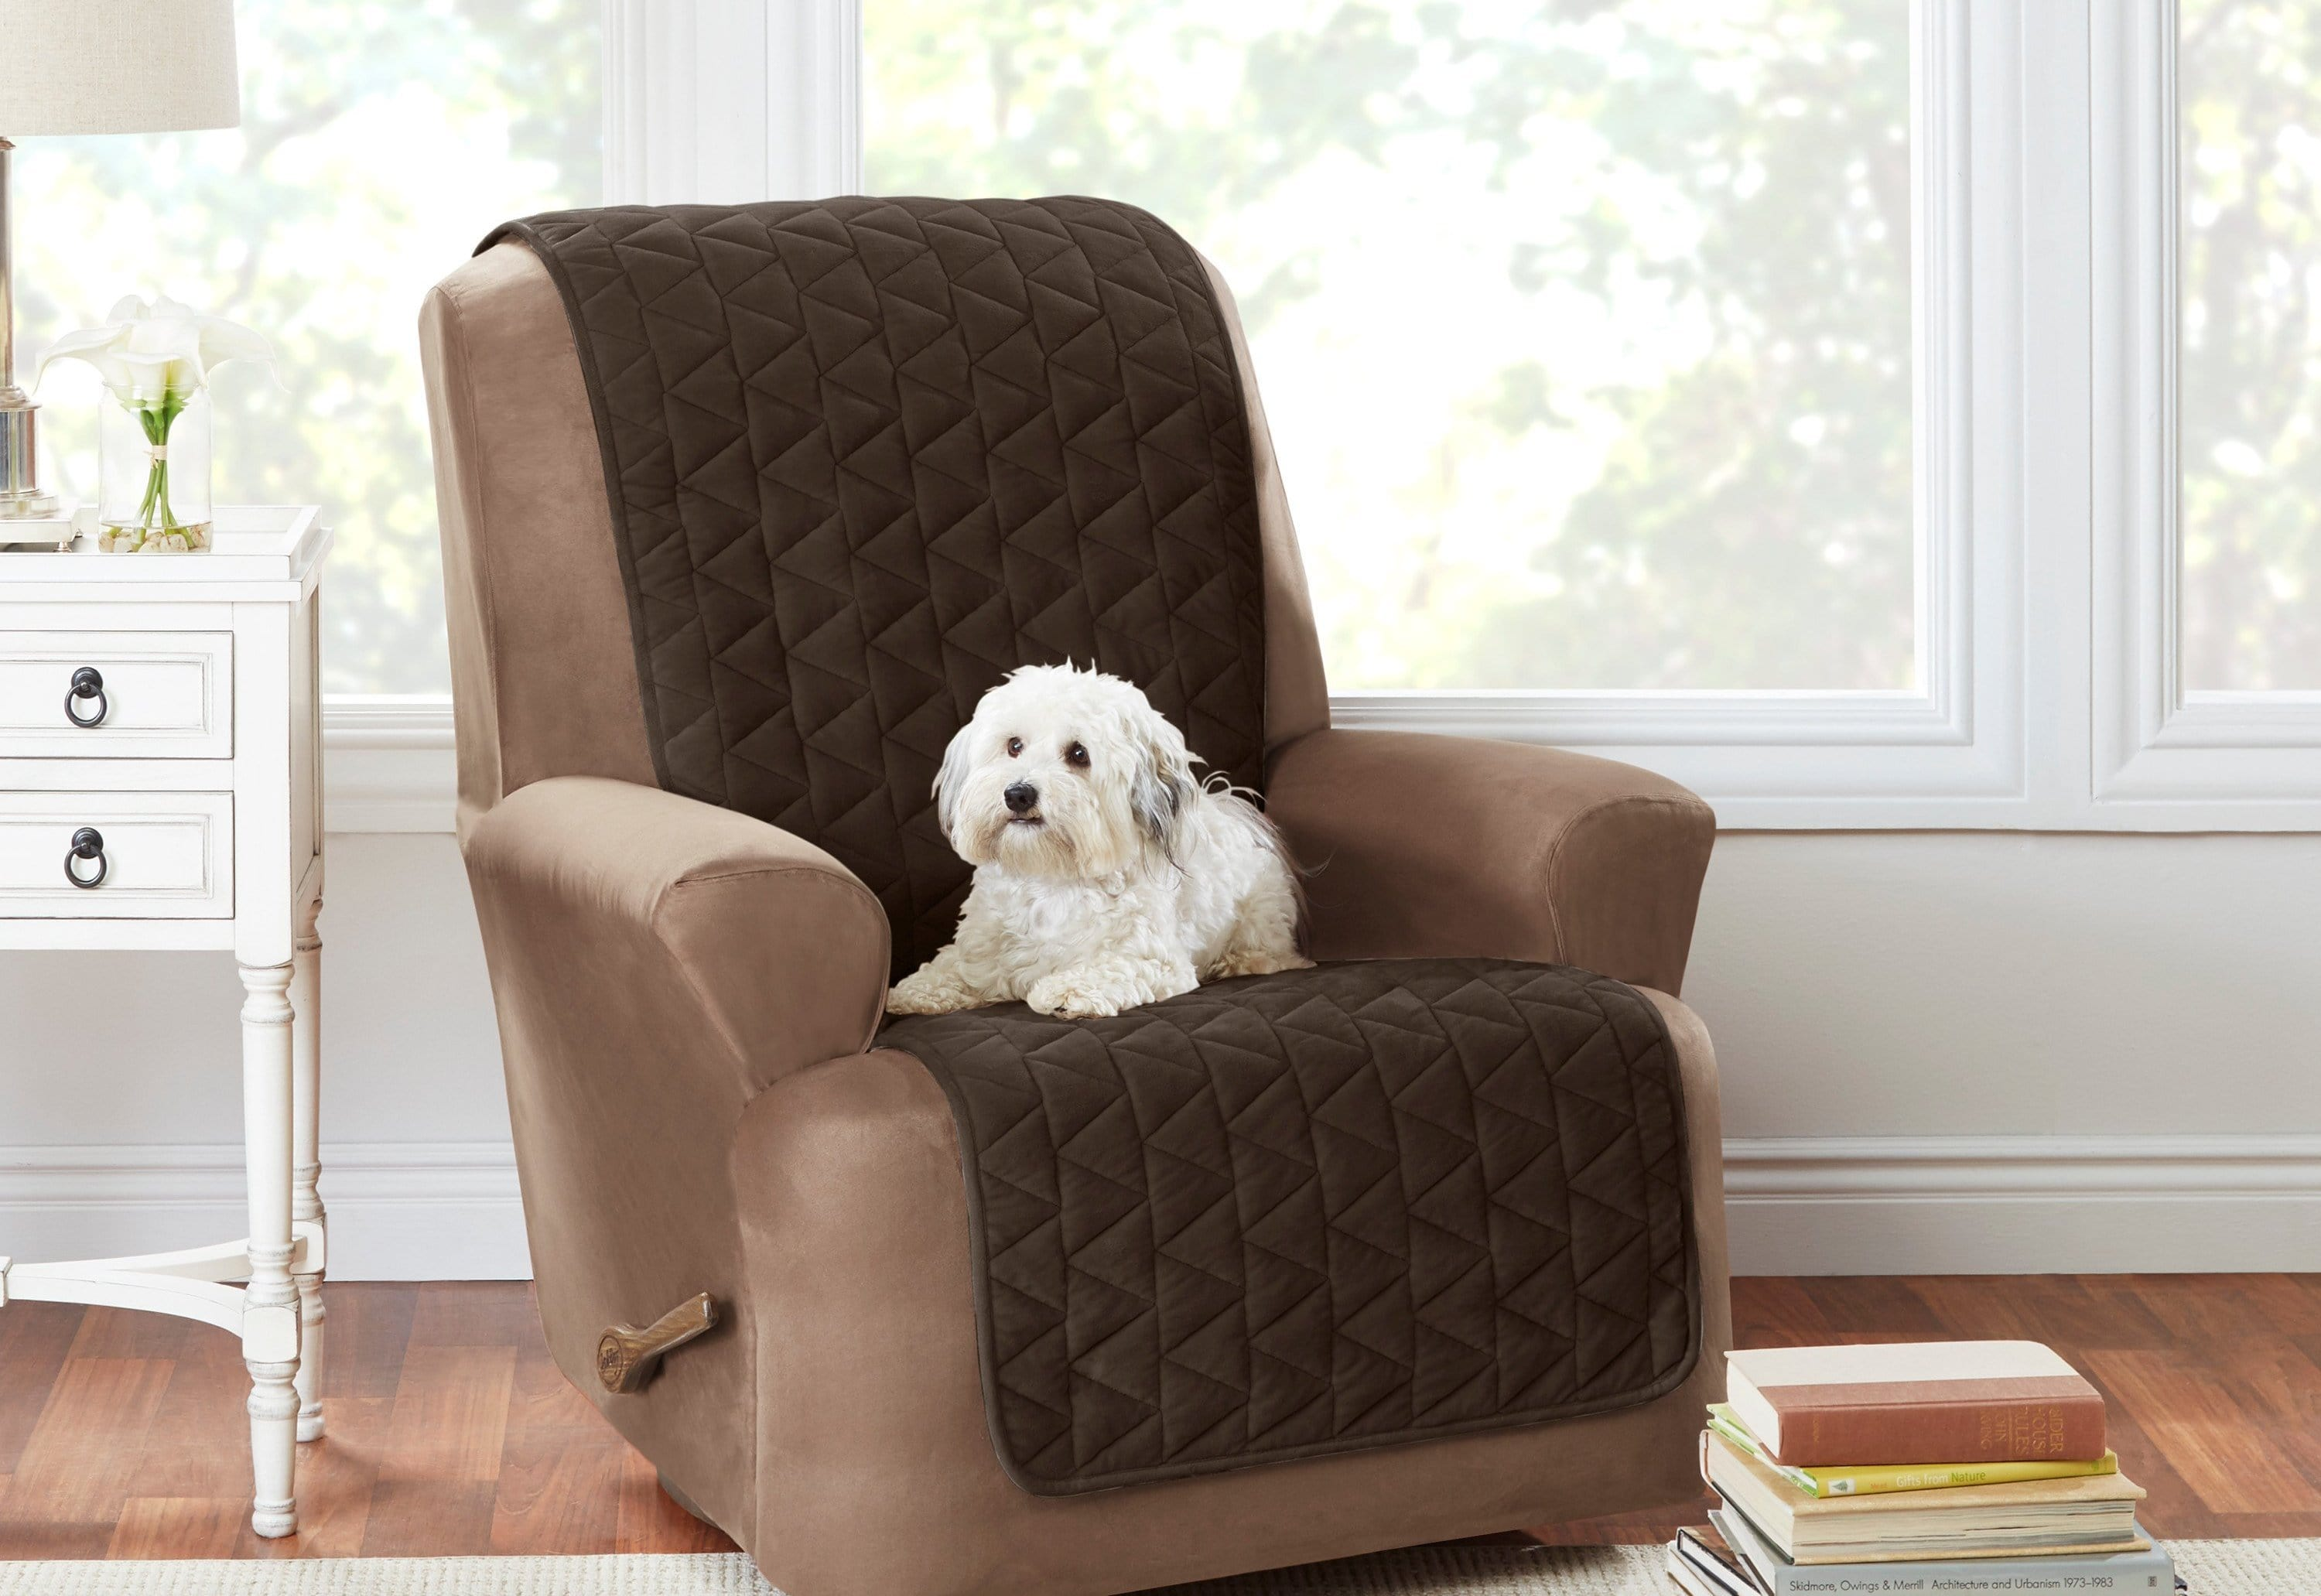 Armless Recliner Furniture Cover Pet Furniture Cover 100% Polyester Machine Washable - Recliner / Chocolate